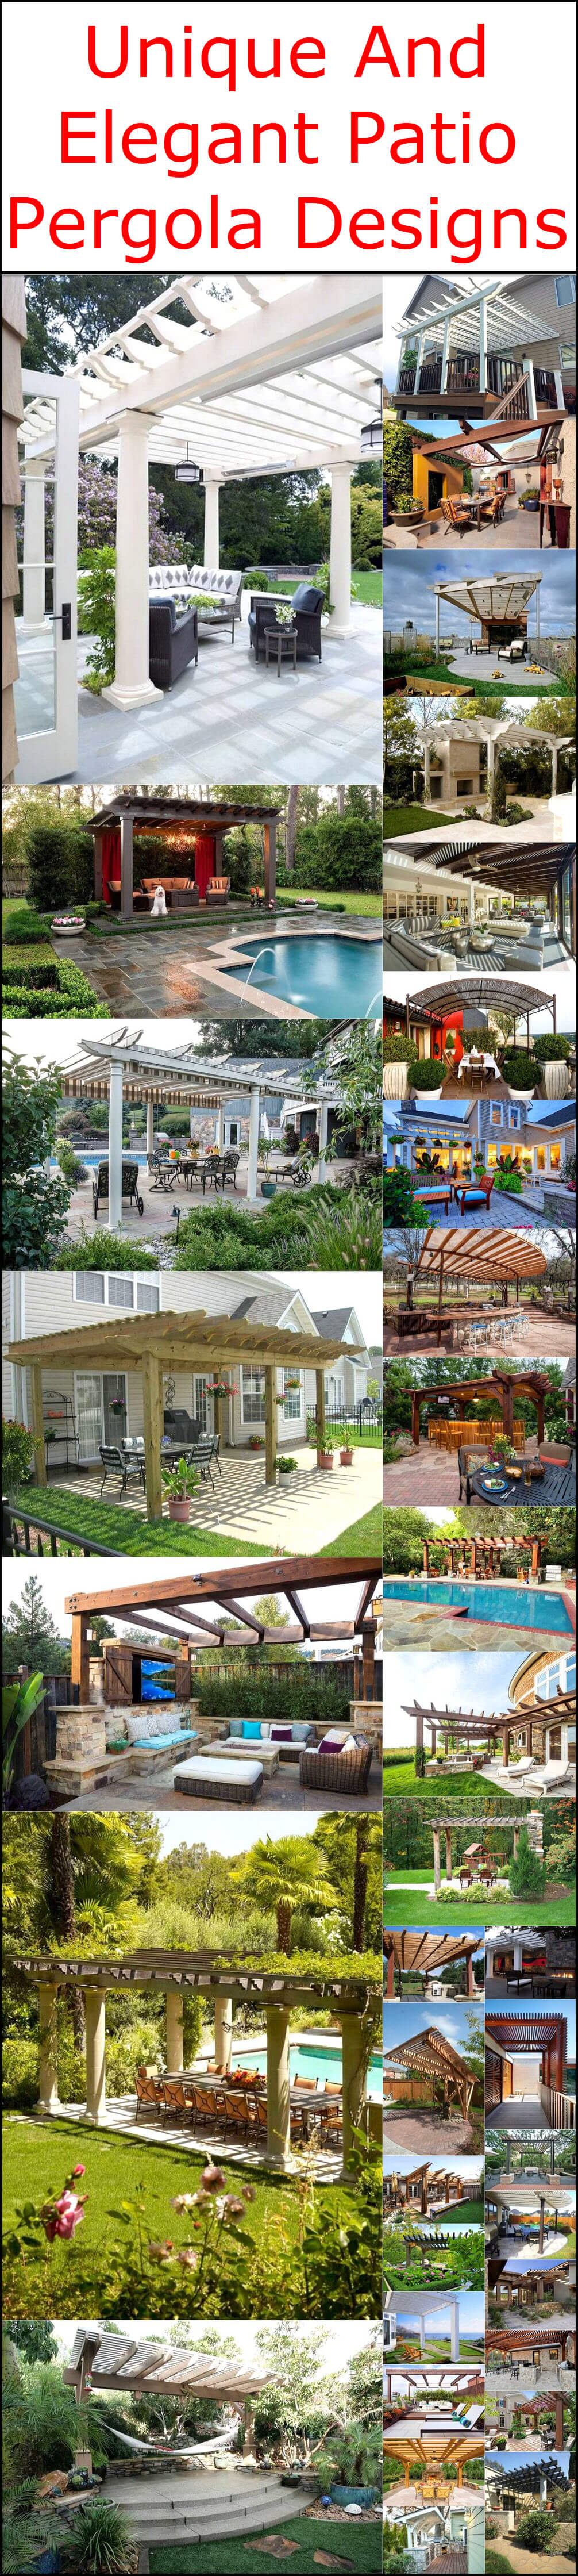 Unique And Elegant Patio Pergola Designs